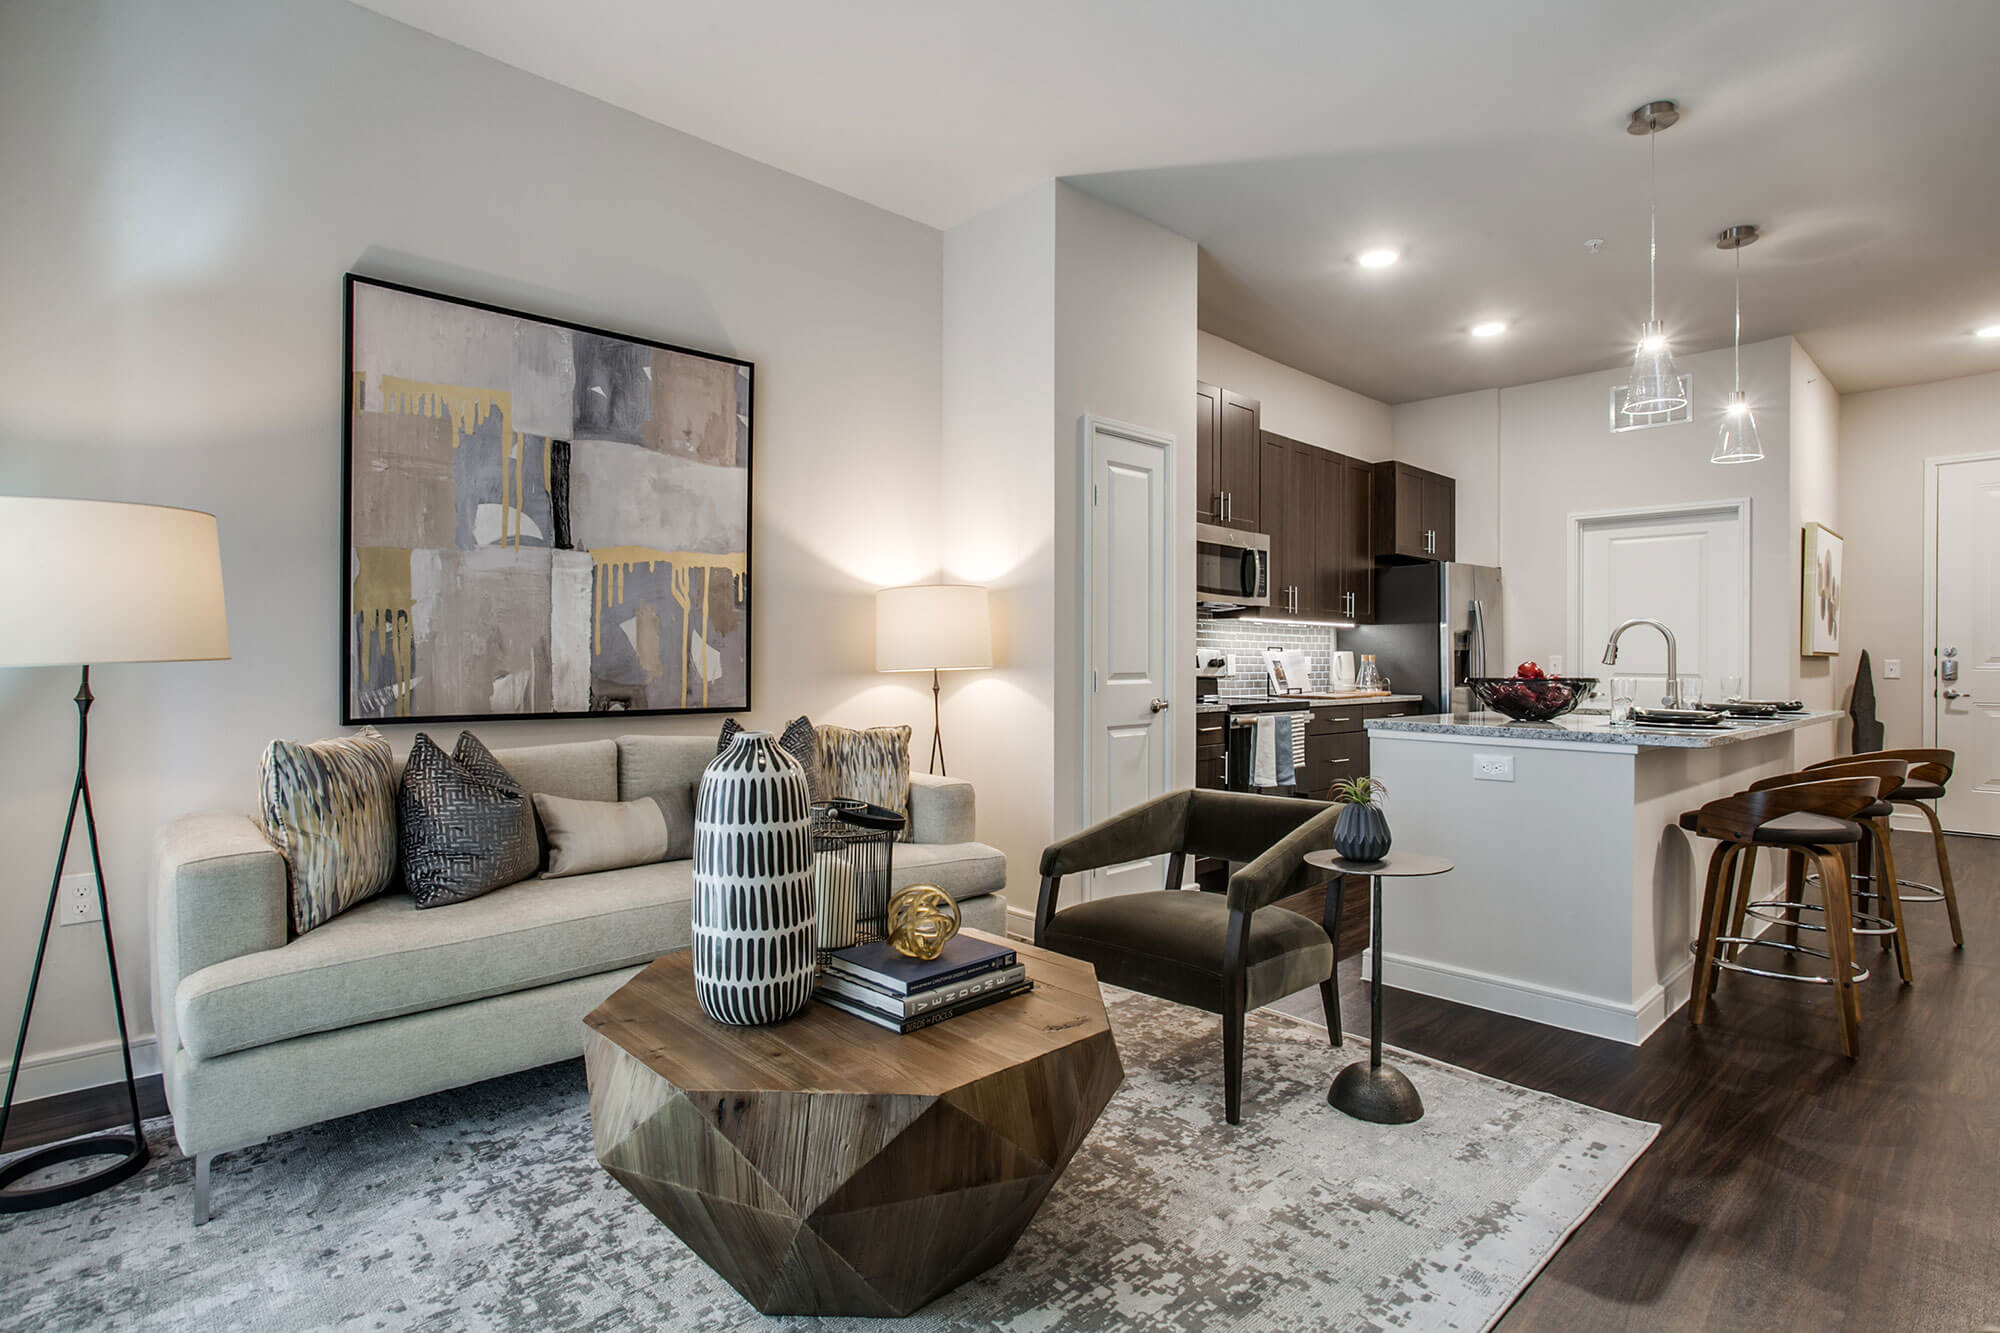 Living room with wood-style floors and modern furniture, open to kitchen with large island, granite counters, pendant lighting, and stainless-steel appliances